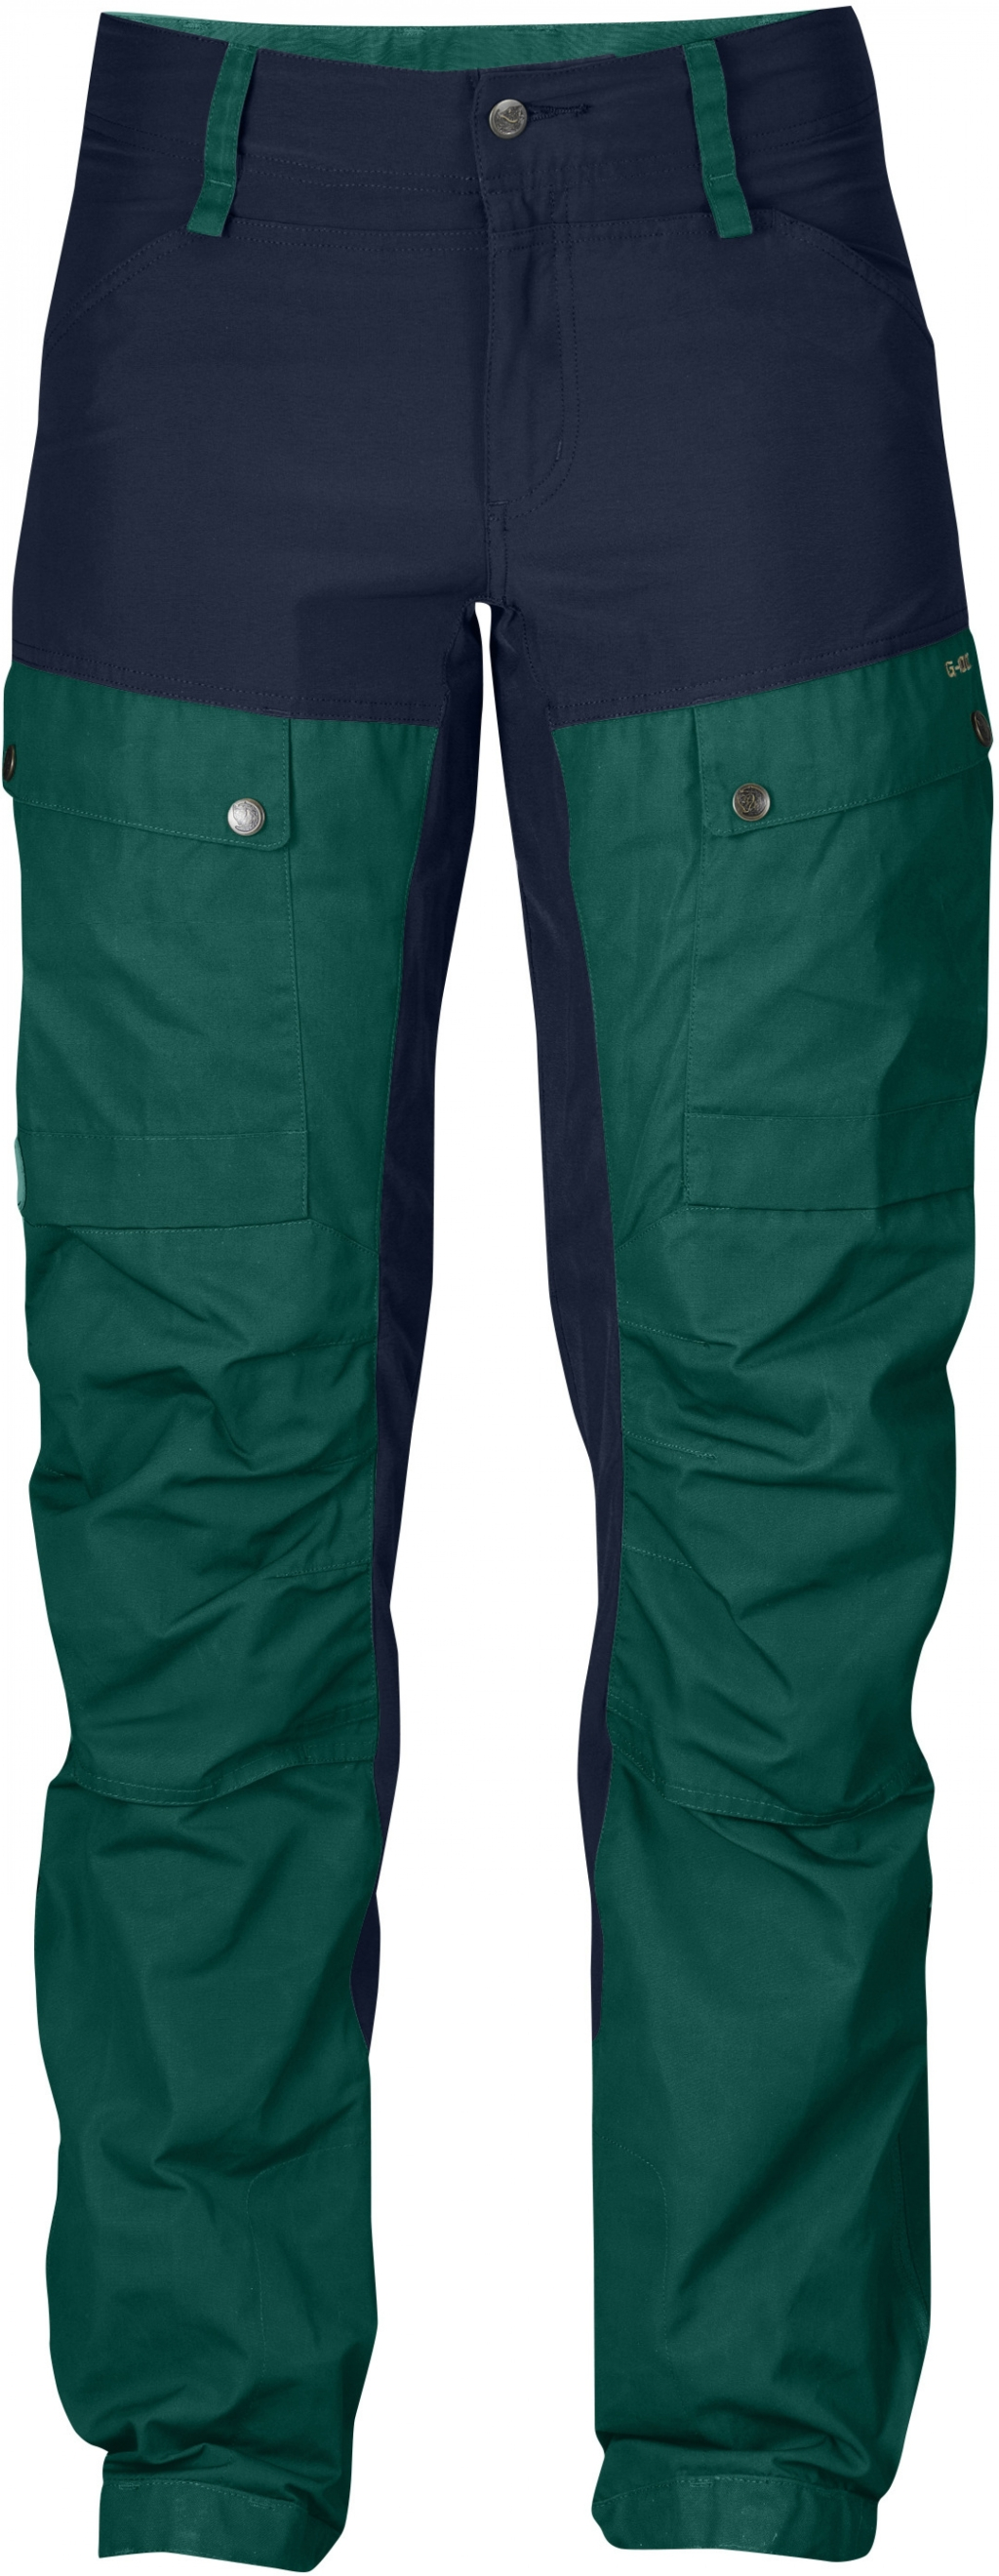 FjallRaven Keb Trousers W Curved Copper Green-30